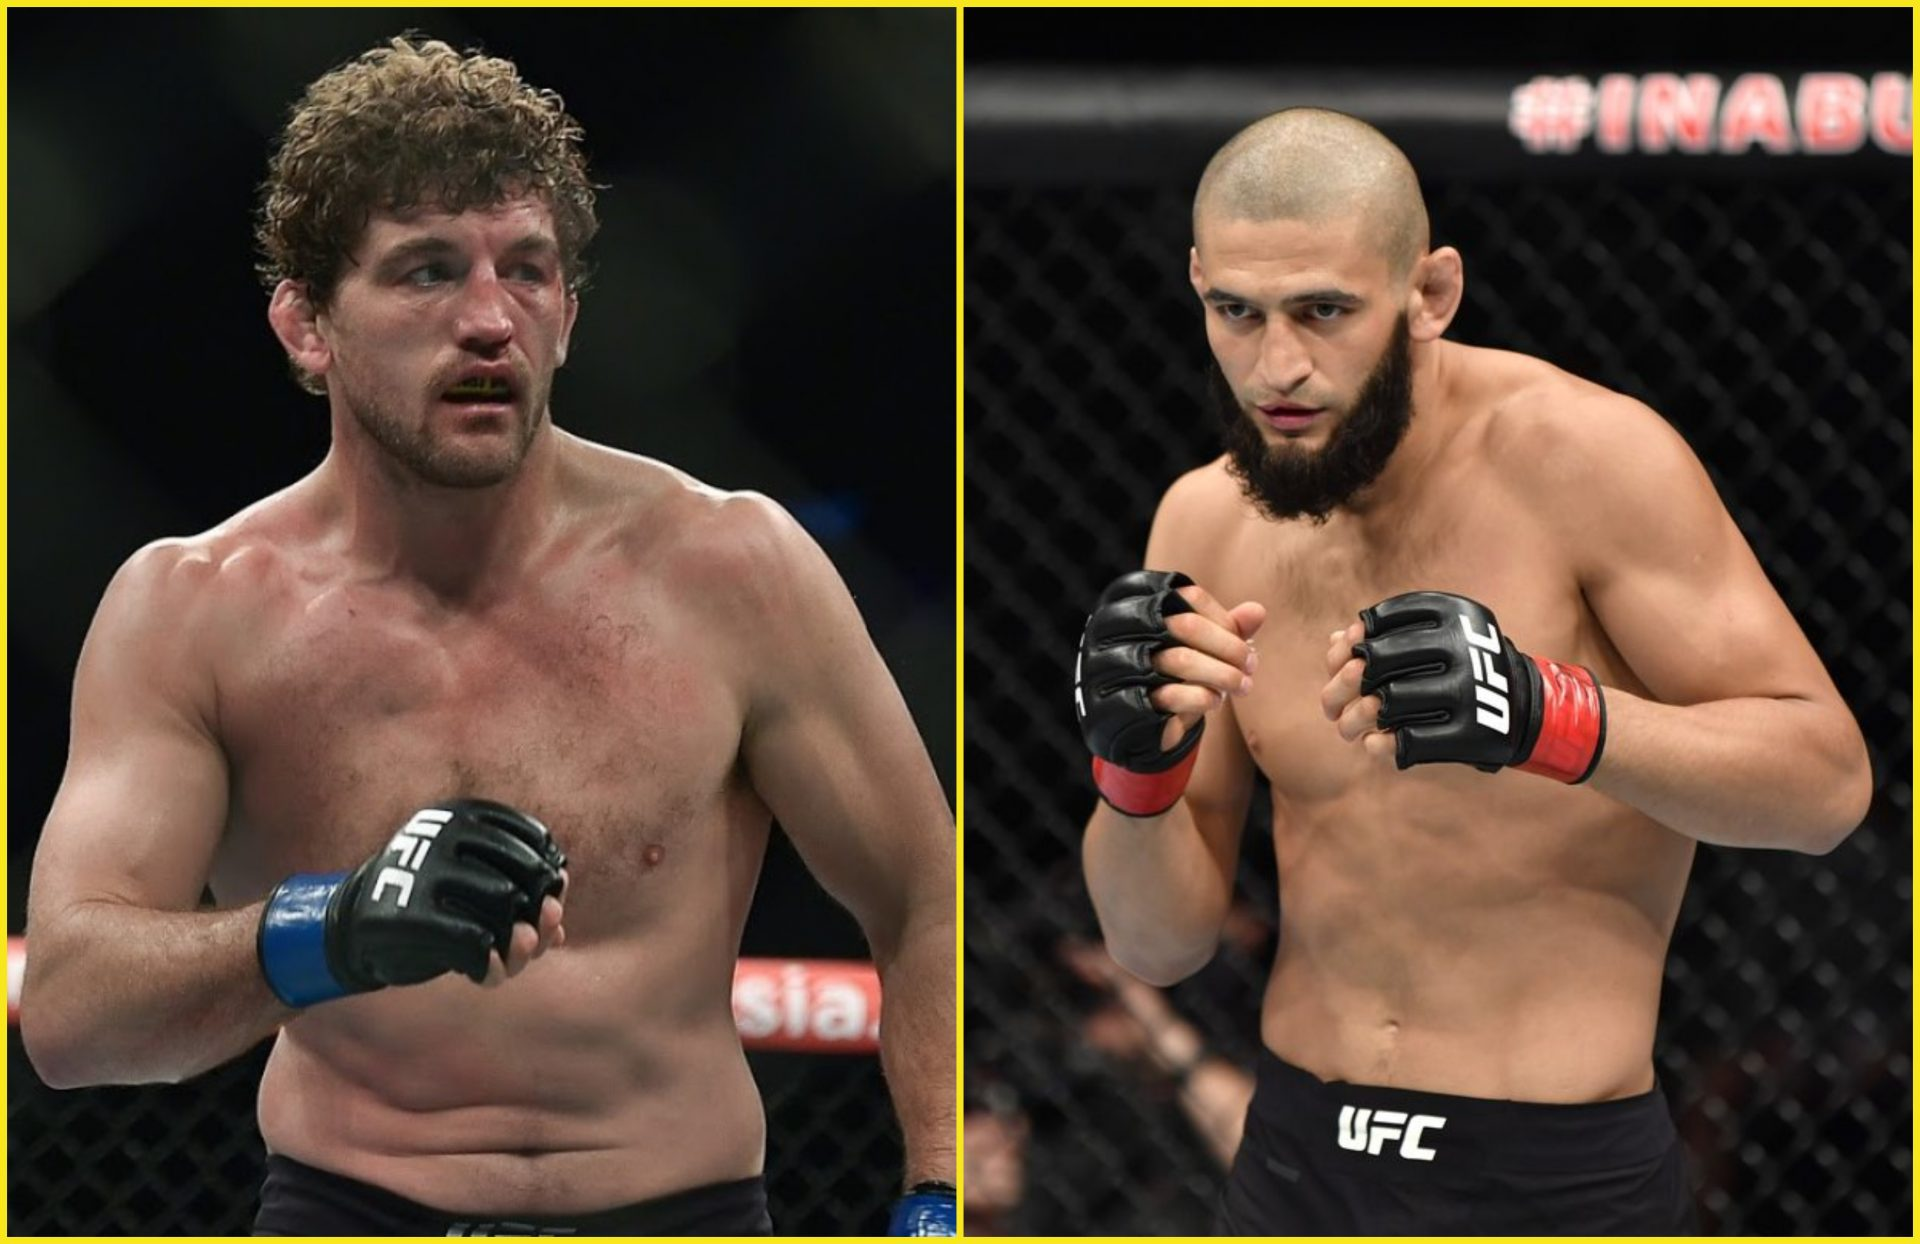 Ben Askren doesn't think Khamzat Chimaev will beat Gerald Meerschaert - Askren